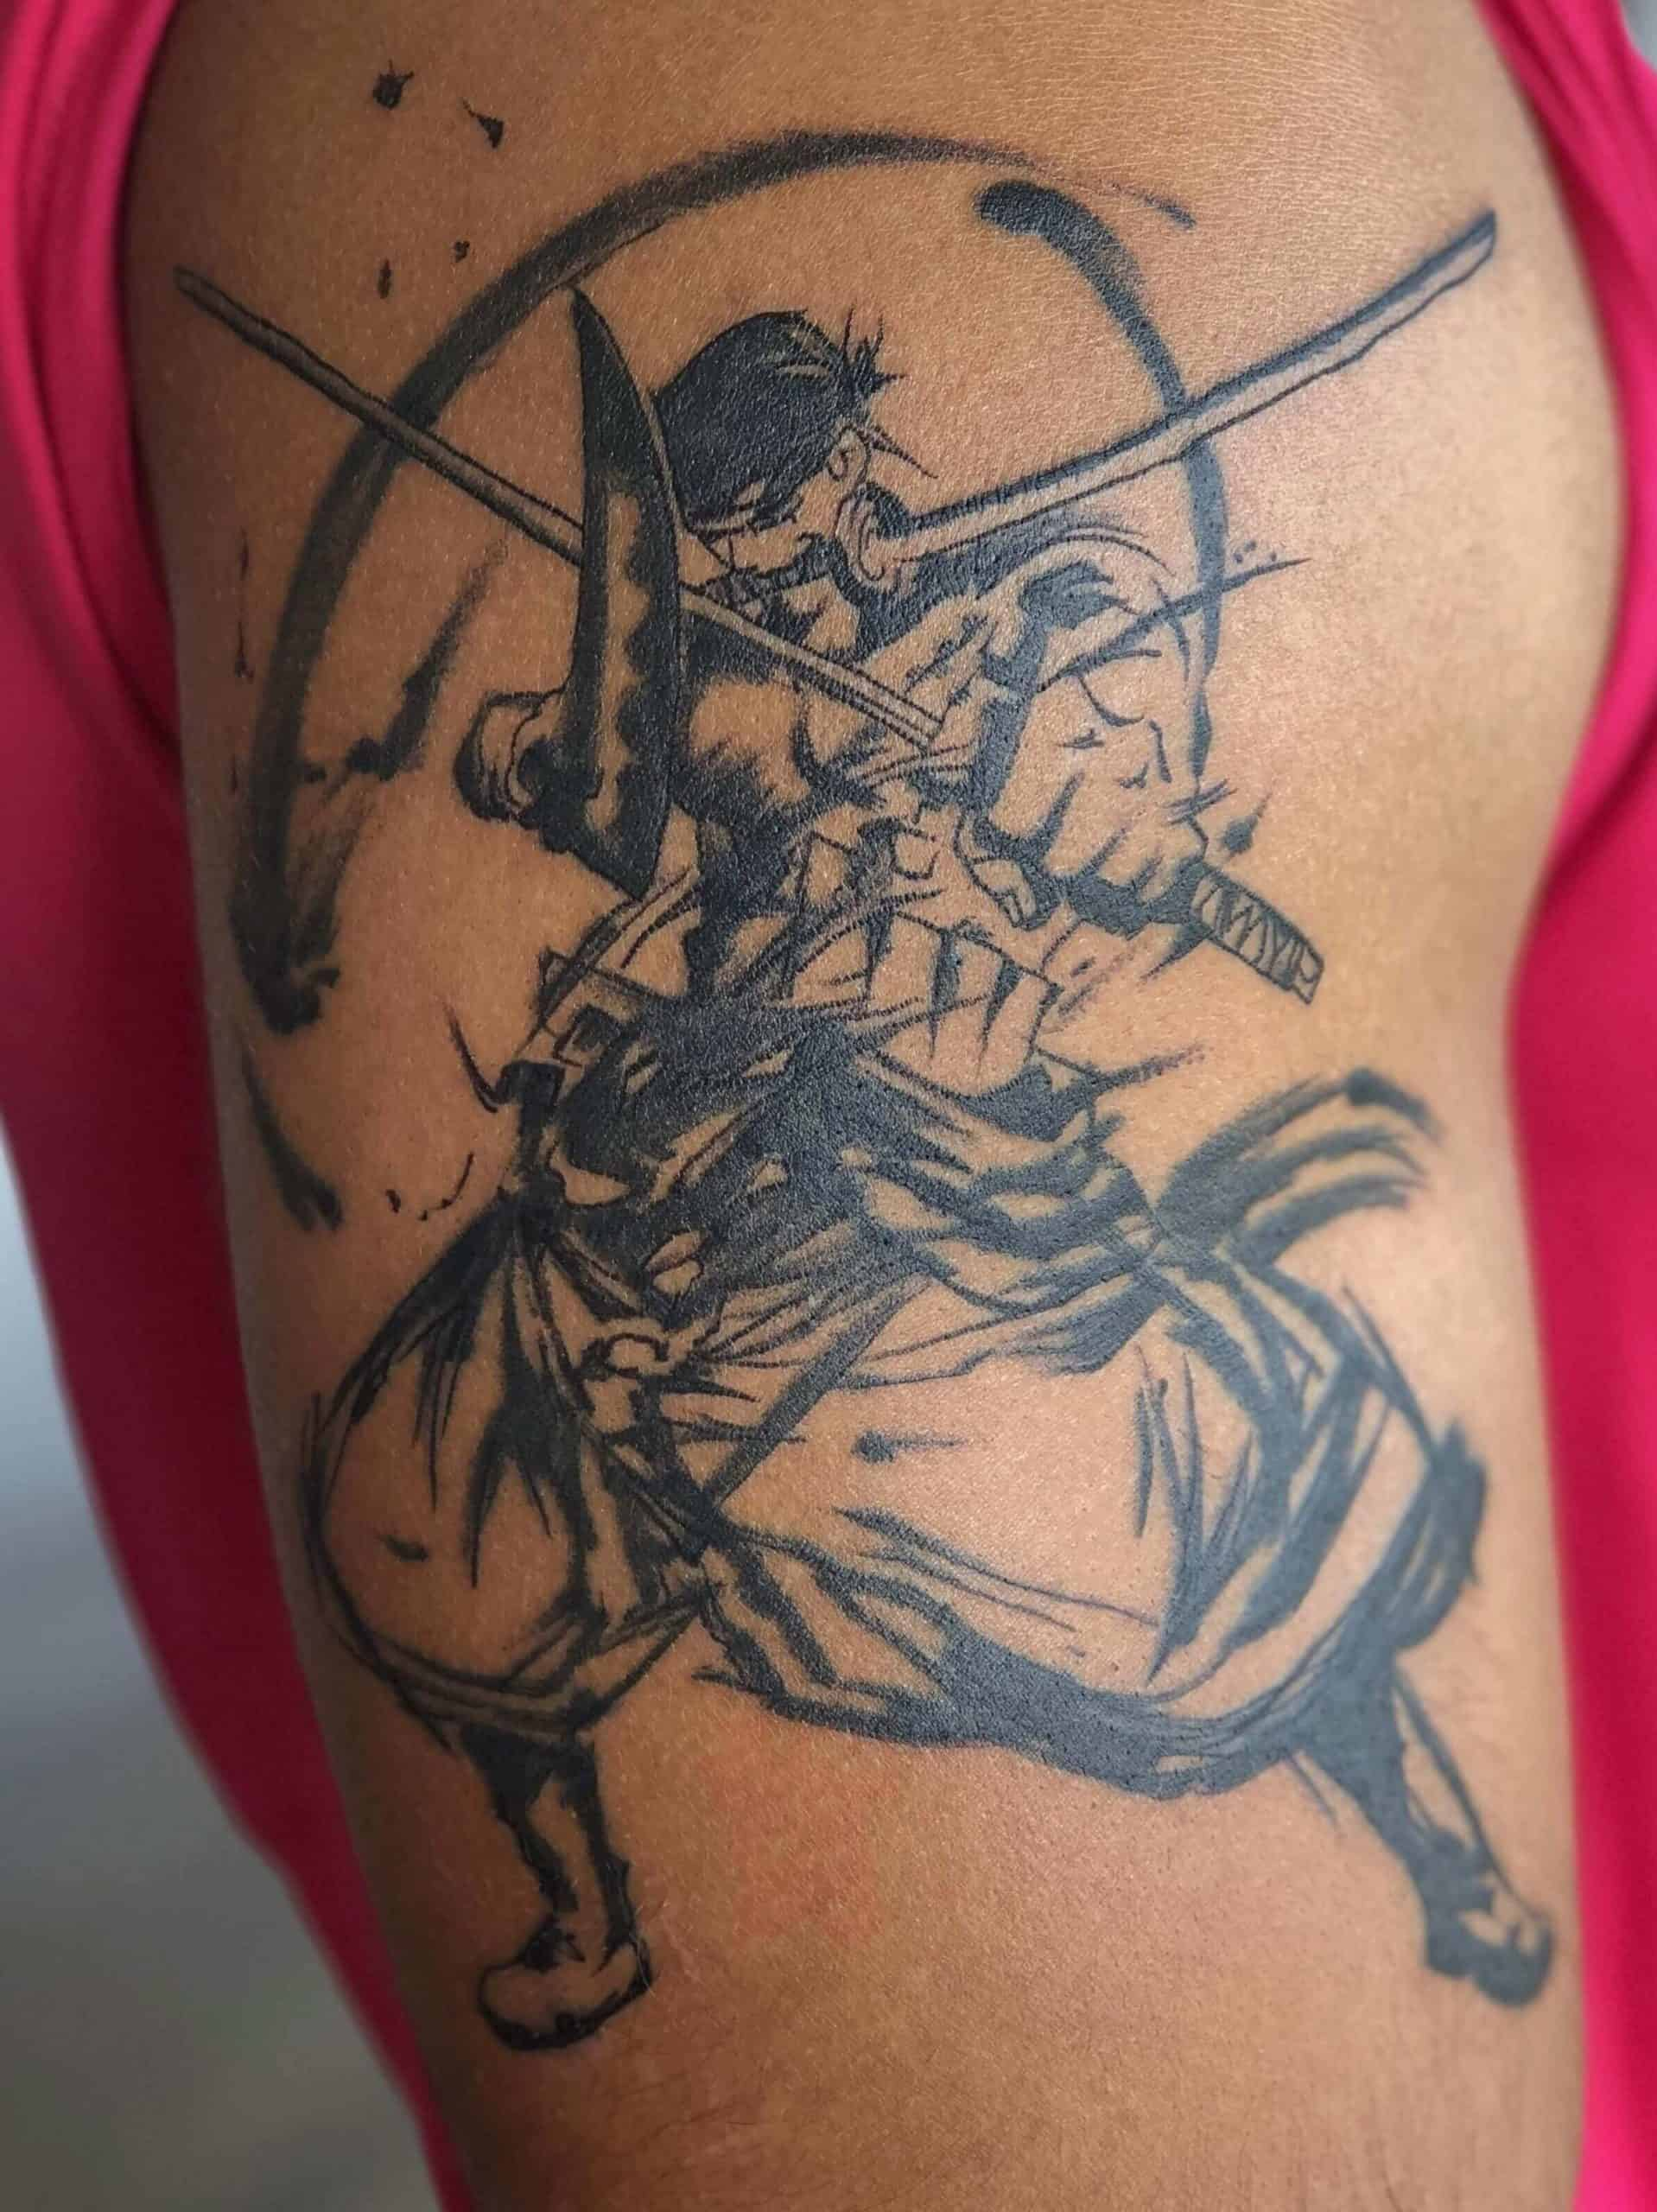 zoro tattoo on arm